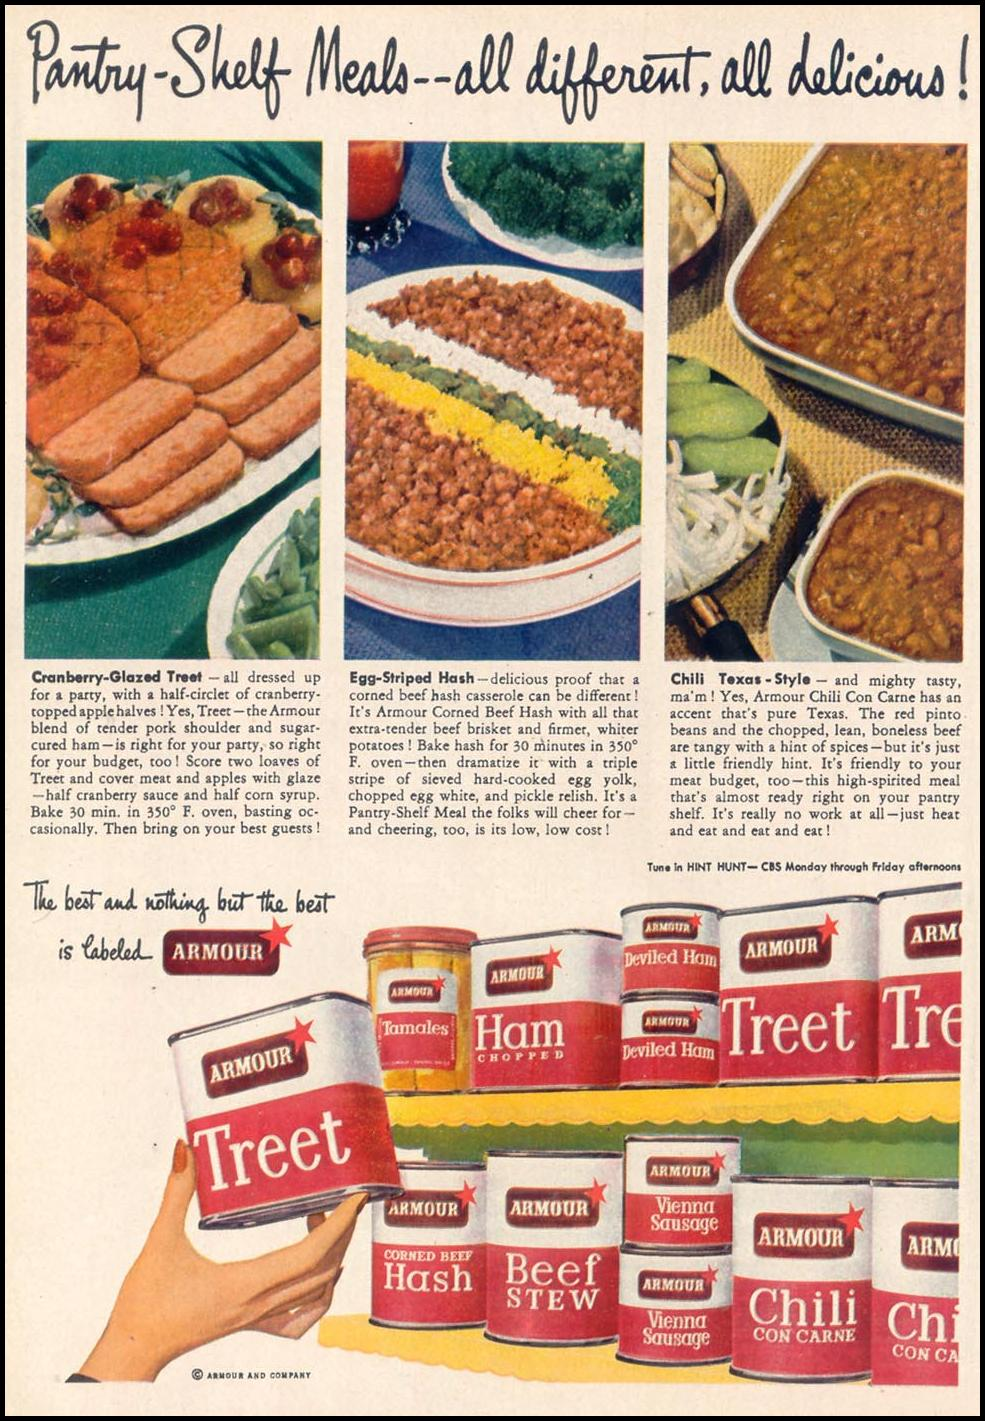 ARMOUR CANNED MEATS WOMAN'S DAY 11/01/1948 p. 34